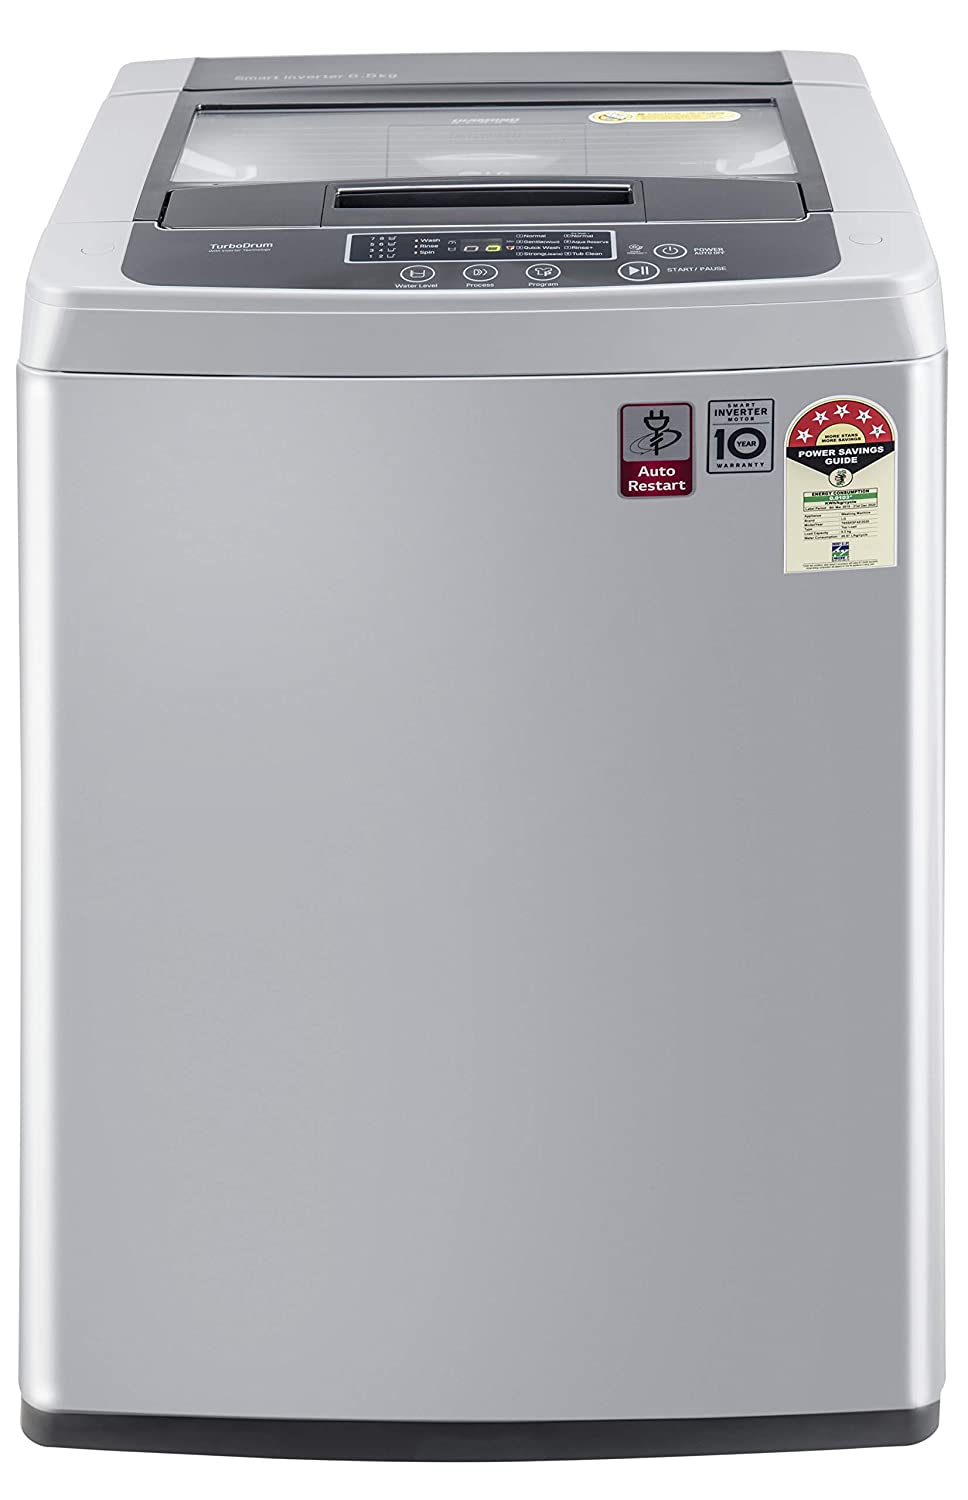 Fully-automatic top load washing machine: Affordable with great wash quality, Easy to use 5 Star Energy Rated Model : Best in class efficiency Capacity 6.5 Kg : Suitable for bachelors & couples Manufacturer Warranty: 2 years on product and 10 years on motor*T&C 780 rpm: Higher spin speeds helps in faster drying Wash Programs: Normal, Pre Wash+Normal, Gentle (Wool/Saree), Quick Wash, Strong (Jeans), Tub Clean/Aqua reserve